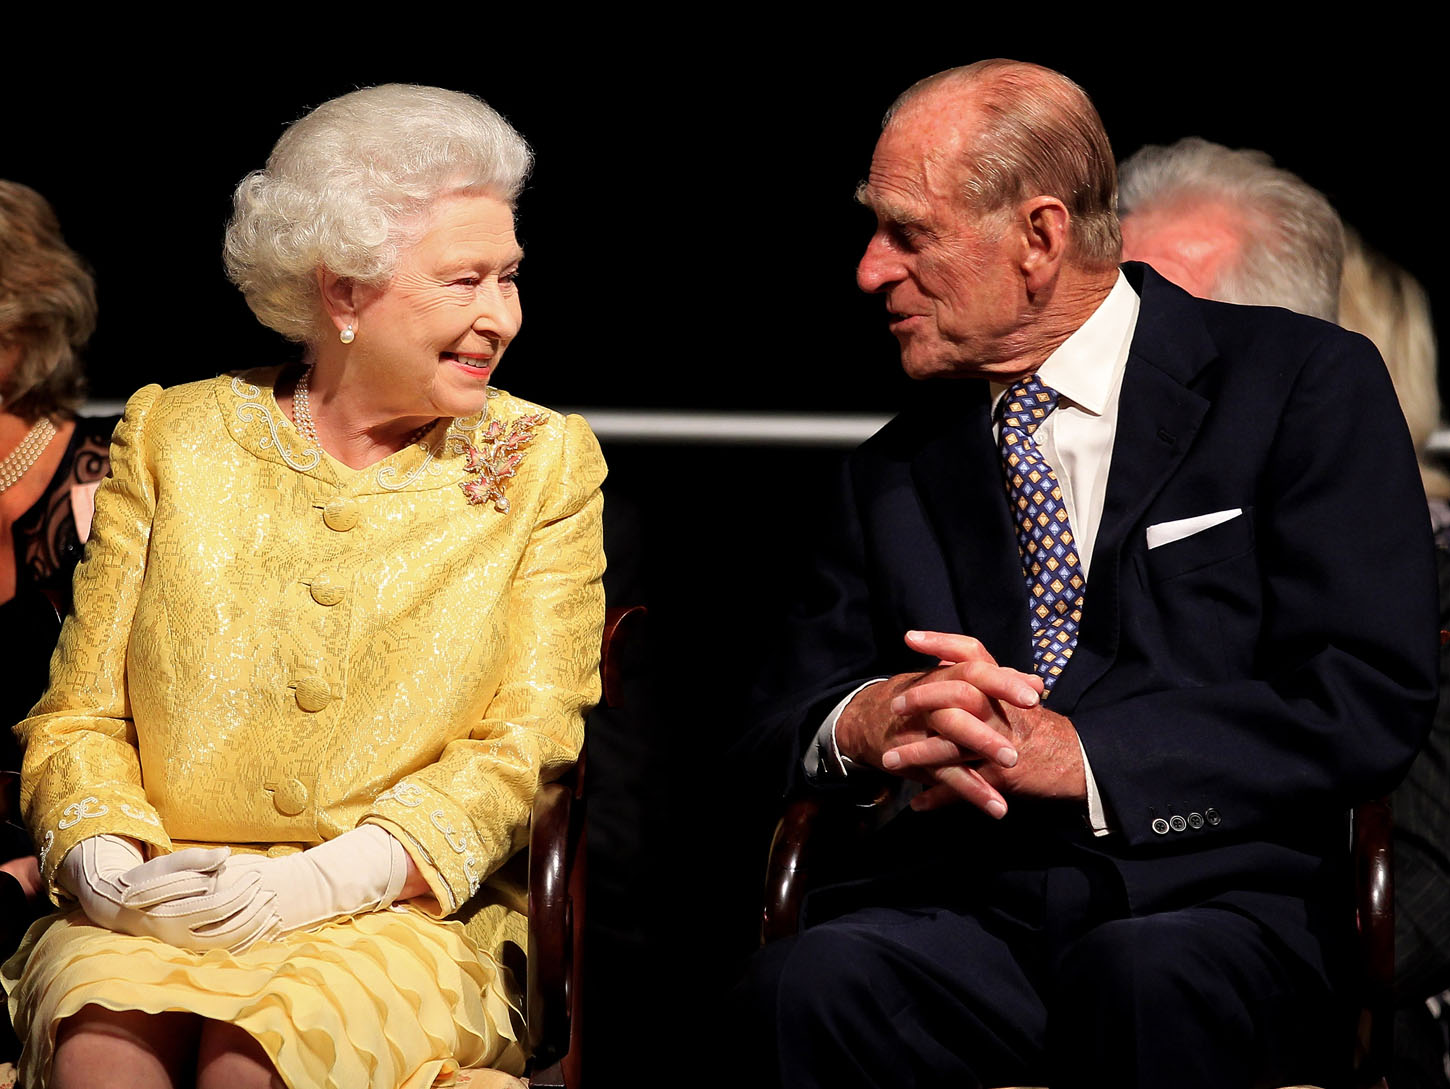 HALIFAX, NS - JUNE 29:  Queen Elizabeth II and Prince Philip, Duke of Edinburgh attend a reception for